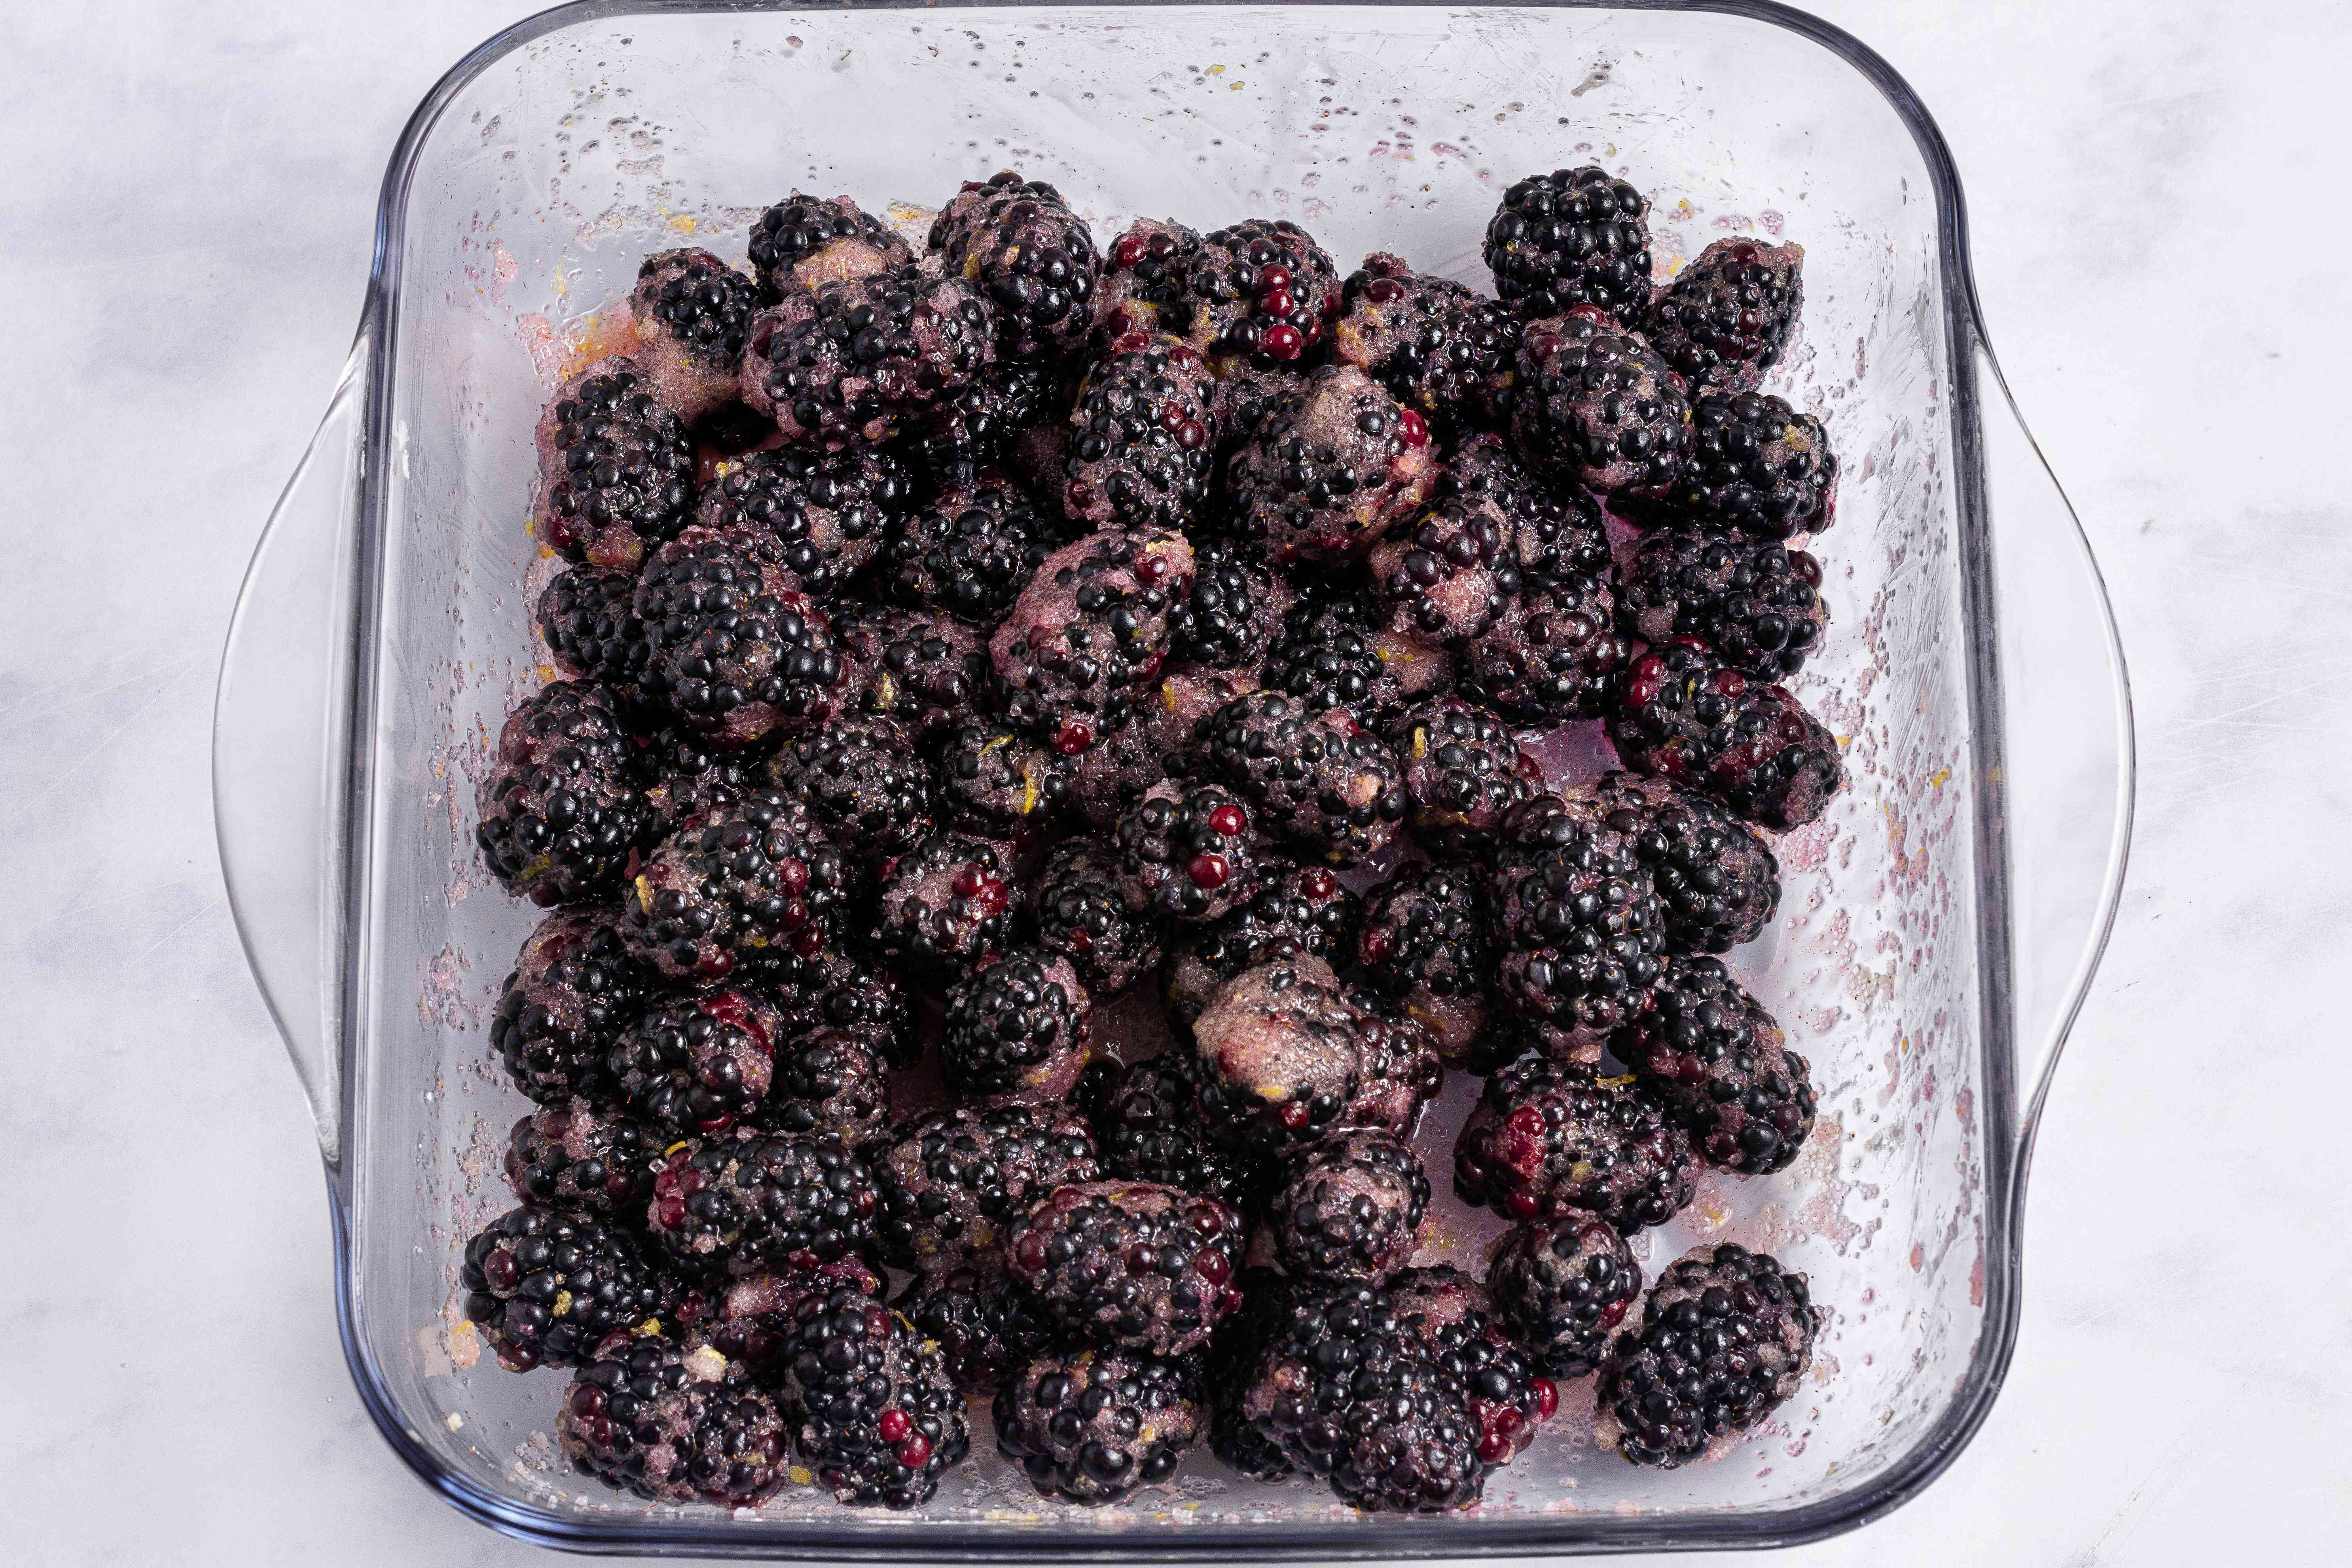 Overhead view of of a baking dish with blackberries in the bottom to make a blackberry cobbler recipe.